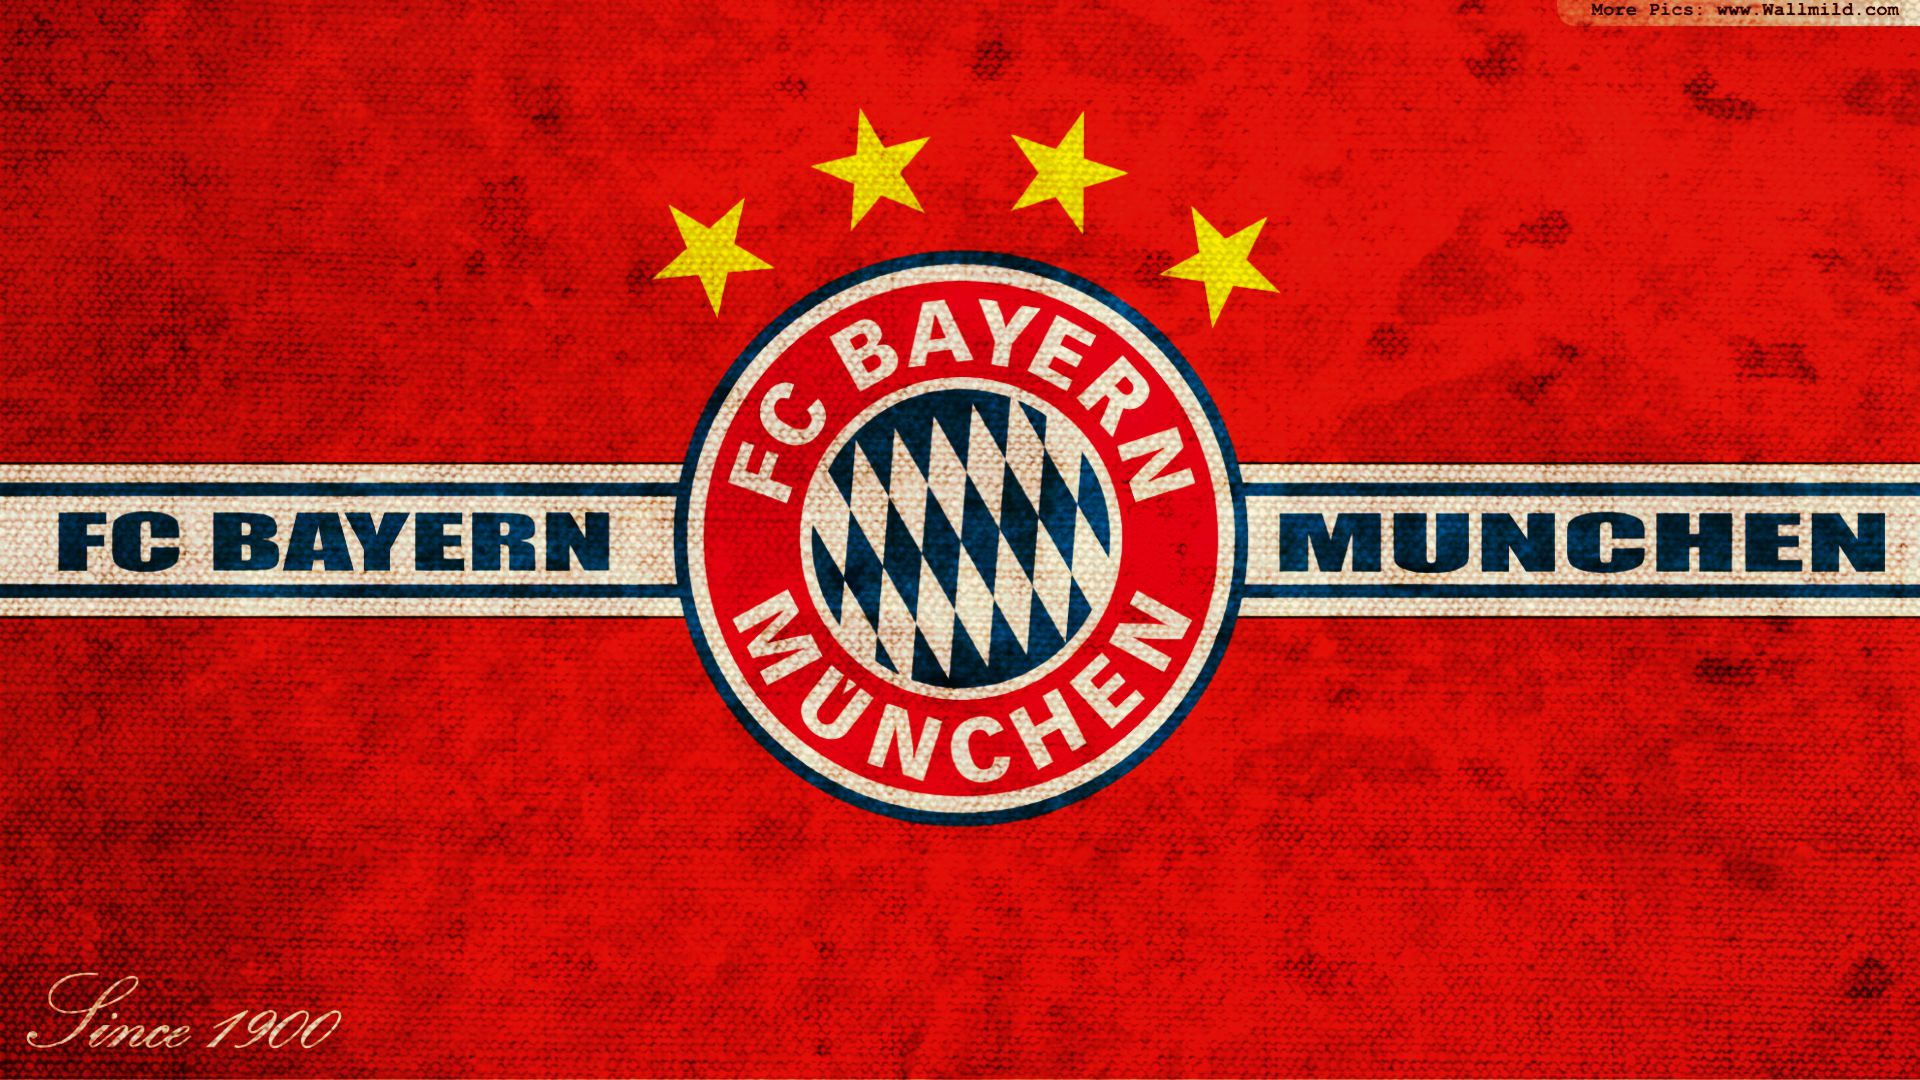 the gallery for bayern munich wallpaper. Black Bedroom Furniture Sets. Home Design Ideas